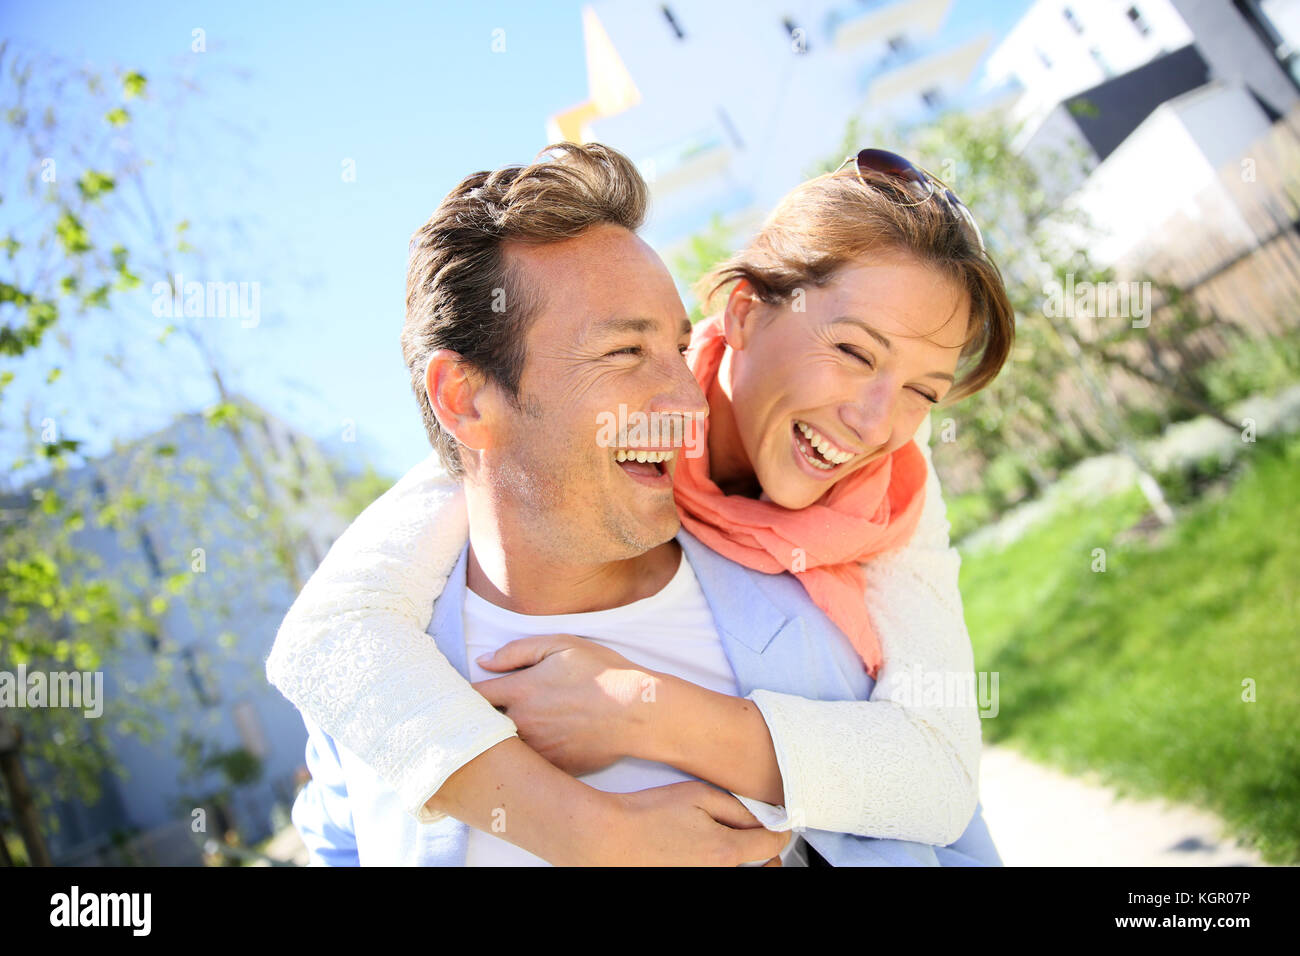 Man giving piggyback ride to woman in town - Stock Image